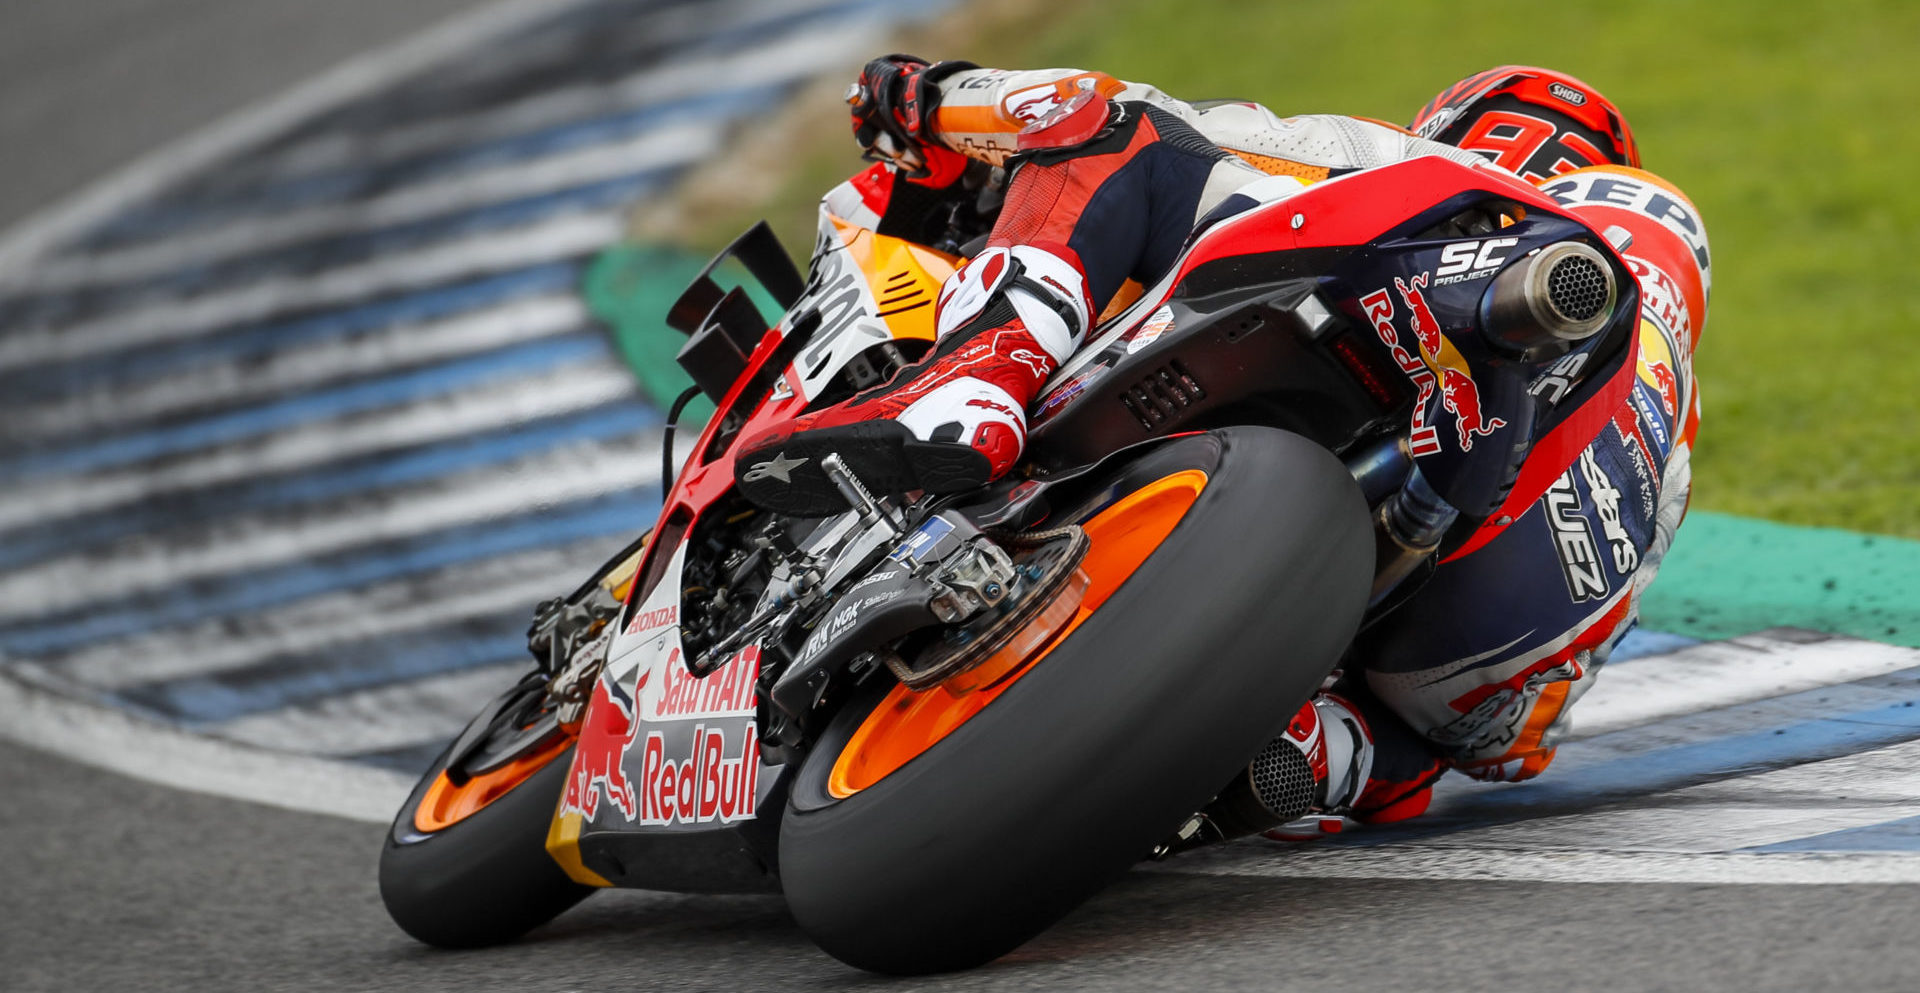 Marc Marquez. Photo courtesy of Repsol Honda.